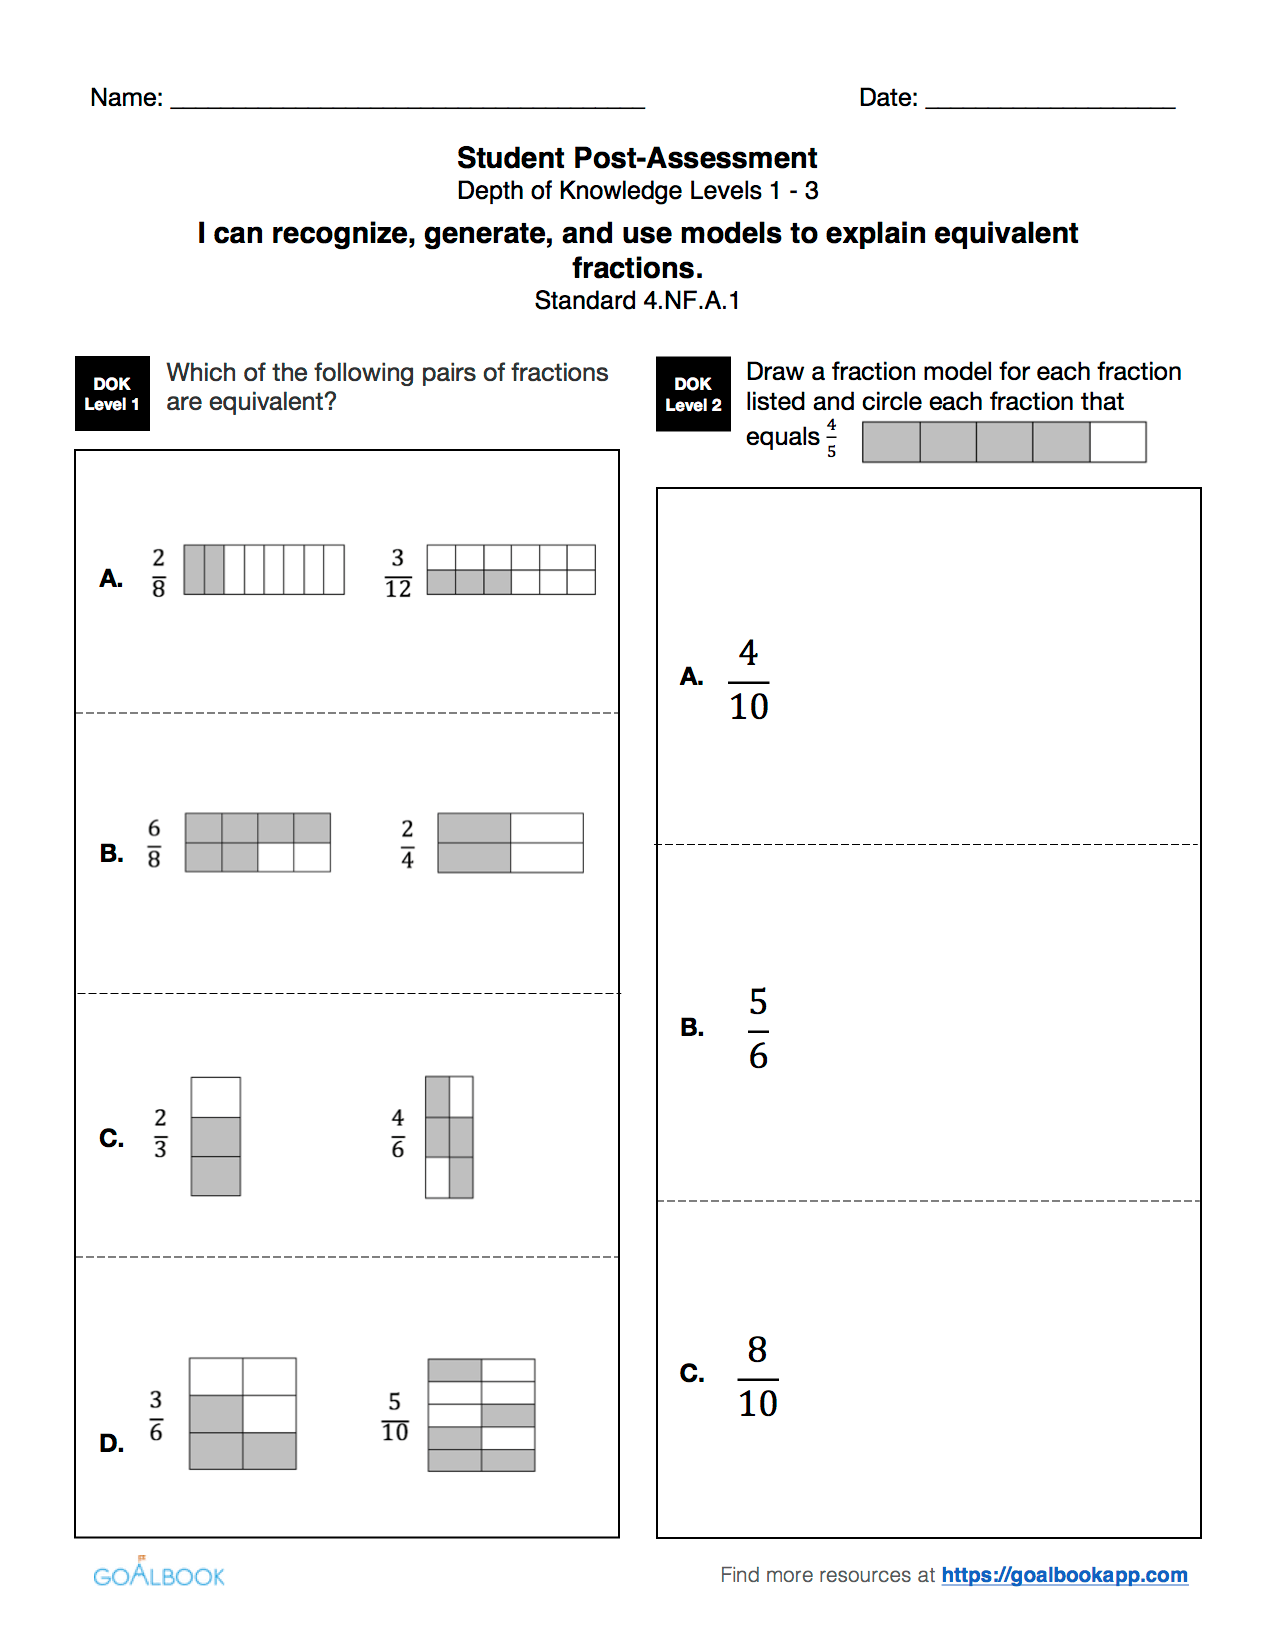 4 Nf 1 Equivalence Using Visual Models